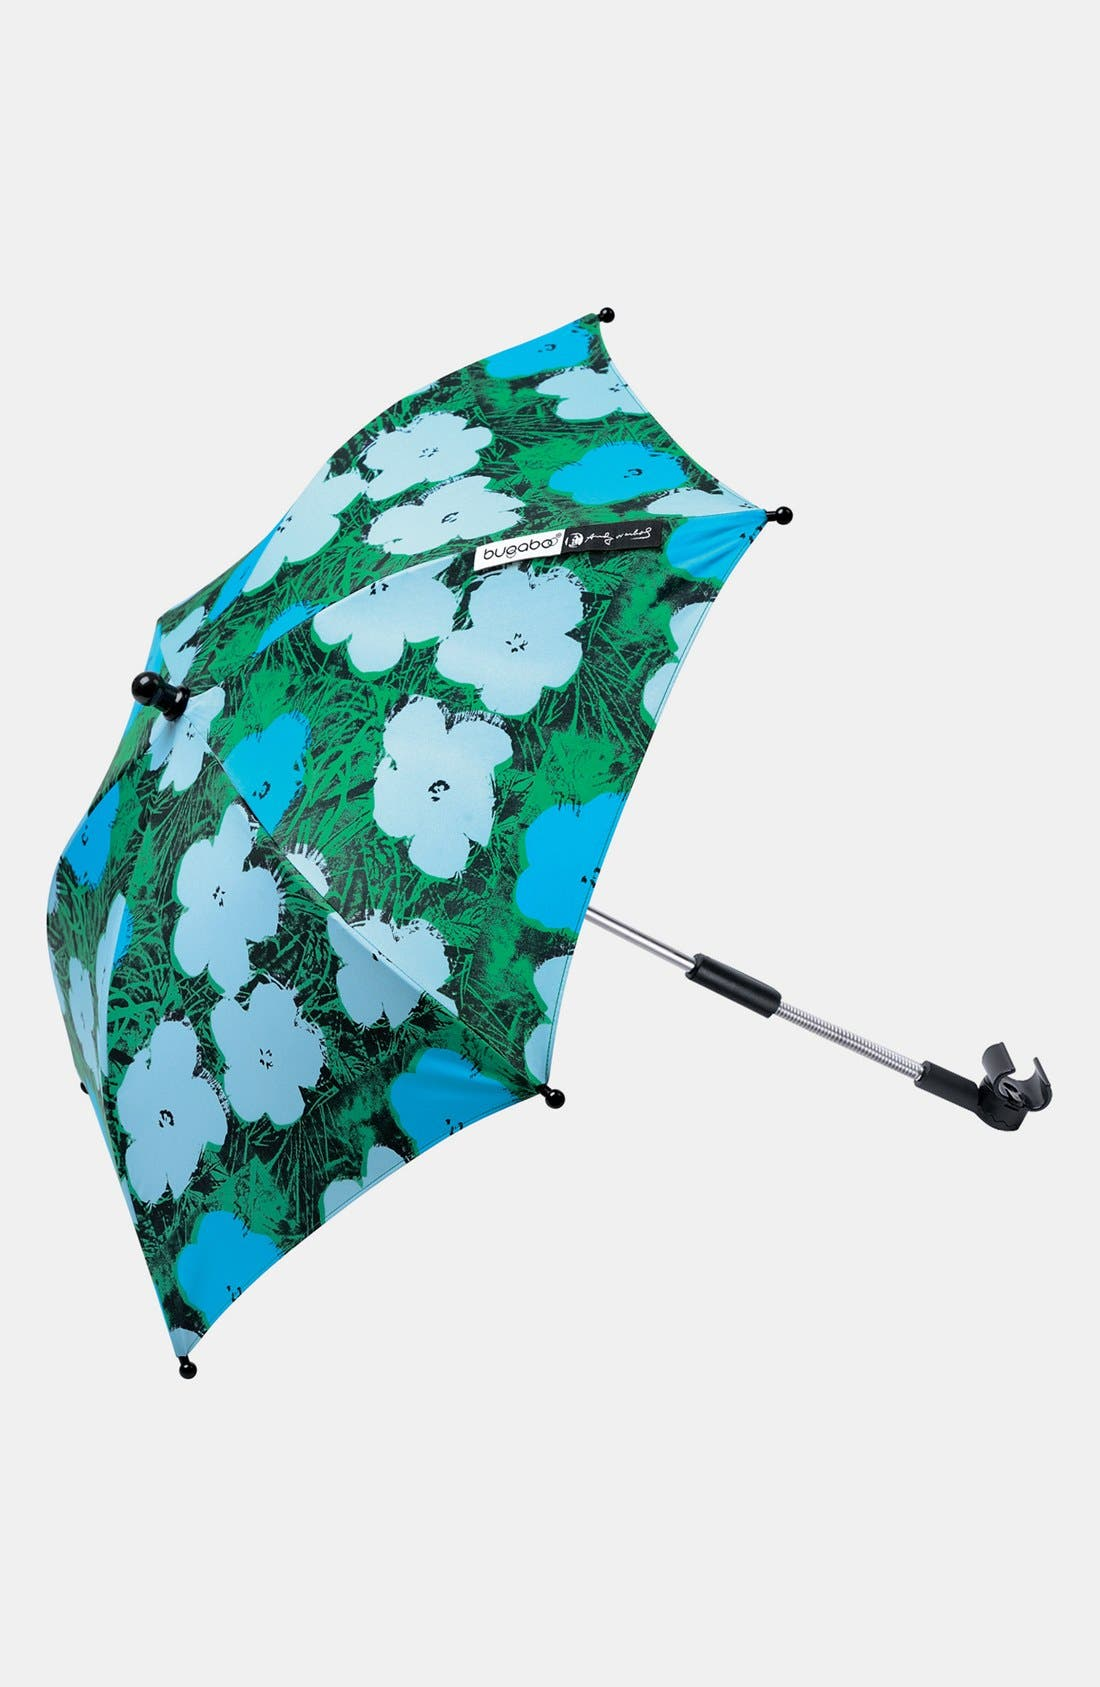 Alternate Image 1 Selected - Bugaboo 'Andy Warhol' Universal Stroller Parasol